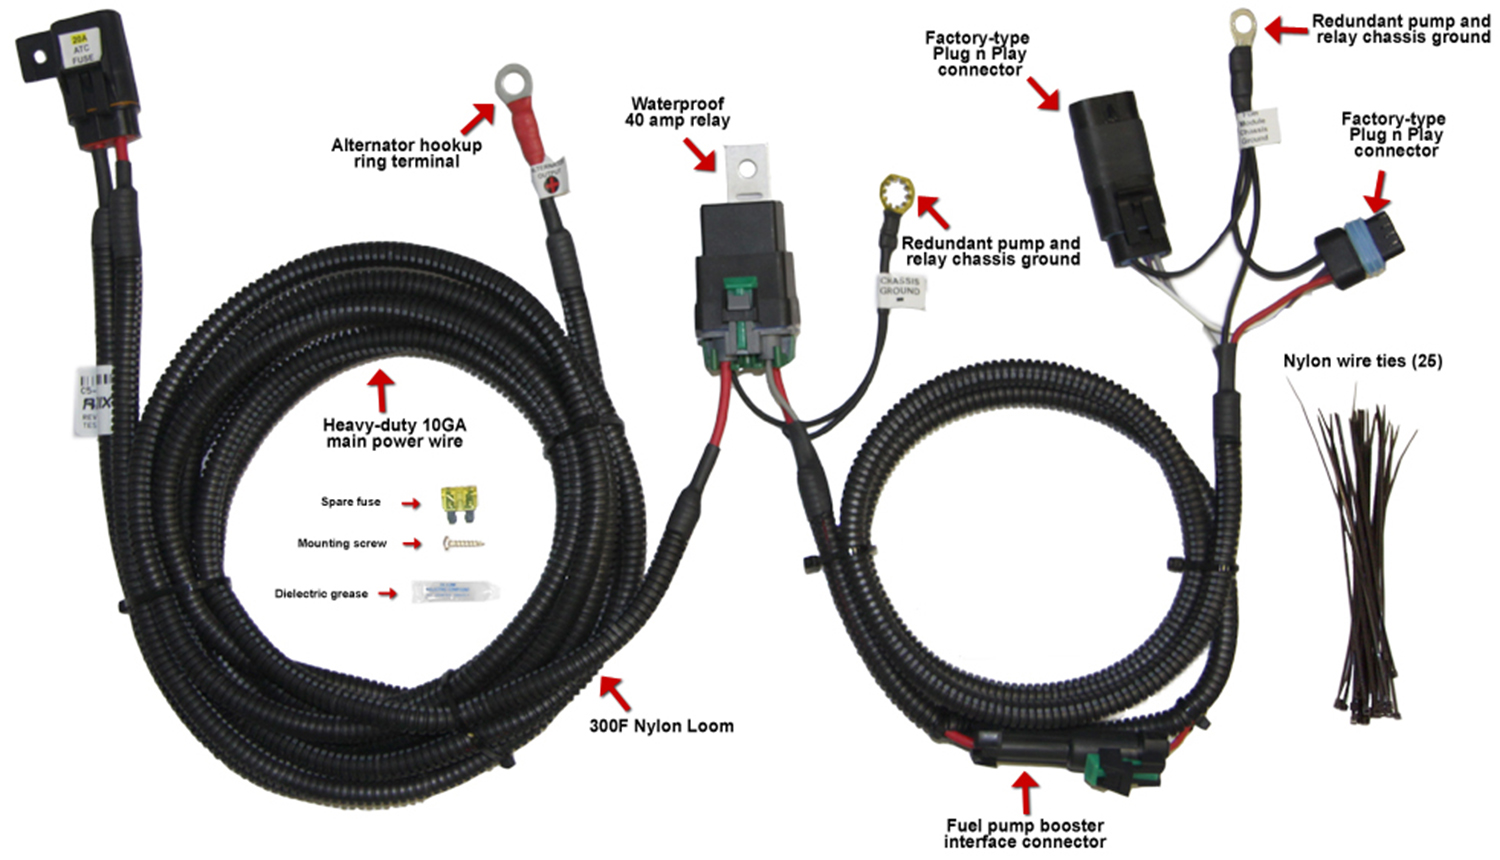 How To Wire Rsi Dual Fuel Pumps Separately Corvetteforum Pin Relay Wiring Schematic Http Wwwnitroustechcom Forums Racetronix Hotwire Harness